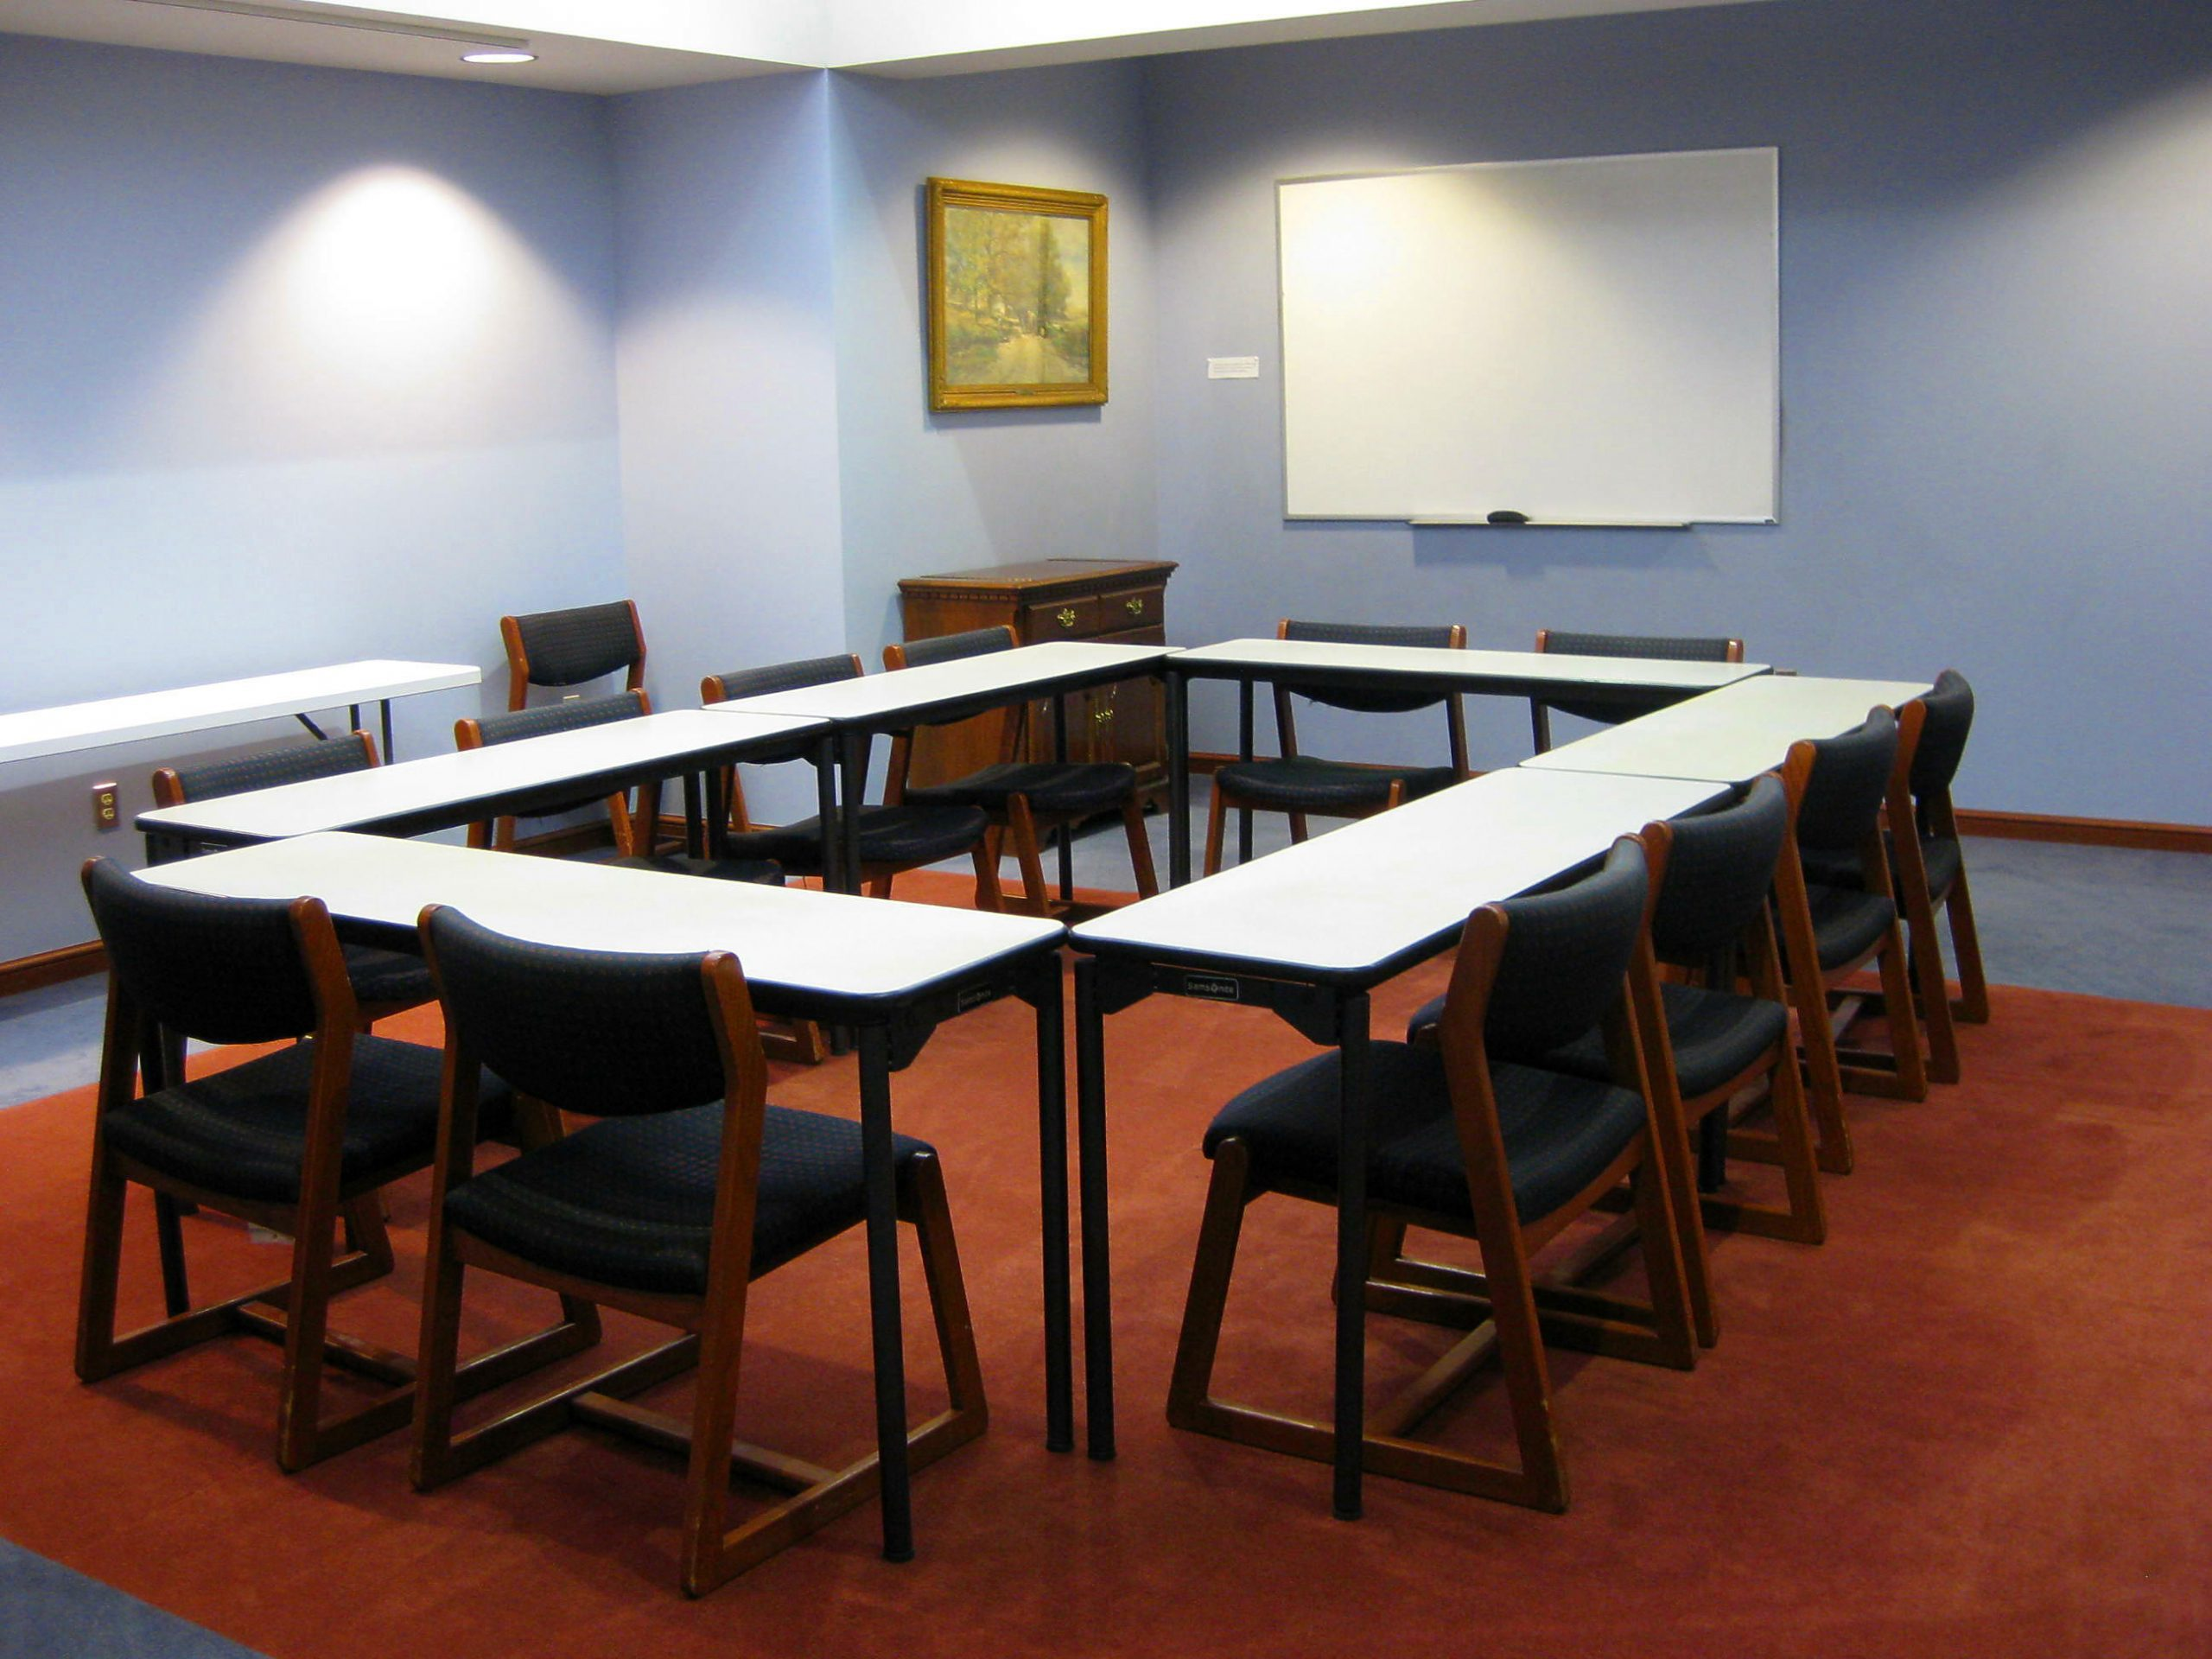 Image of a meeting room